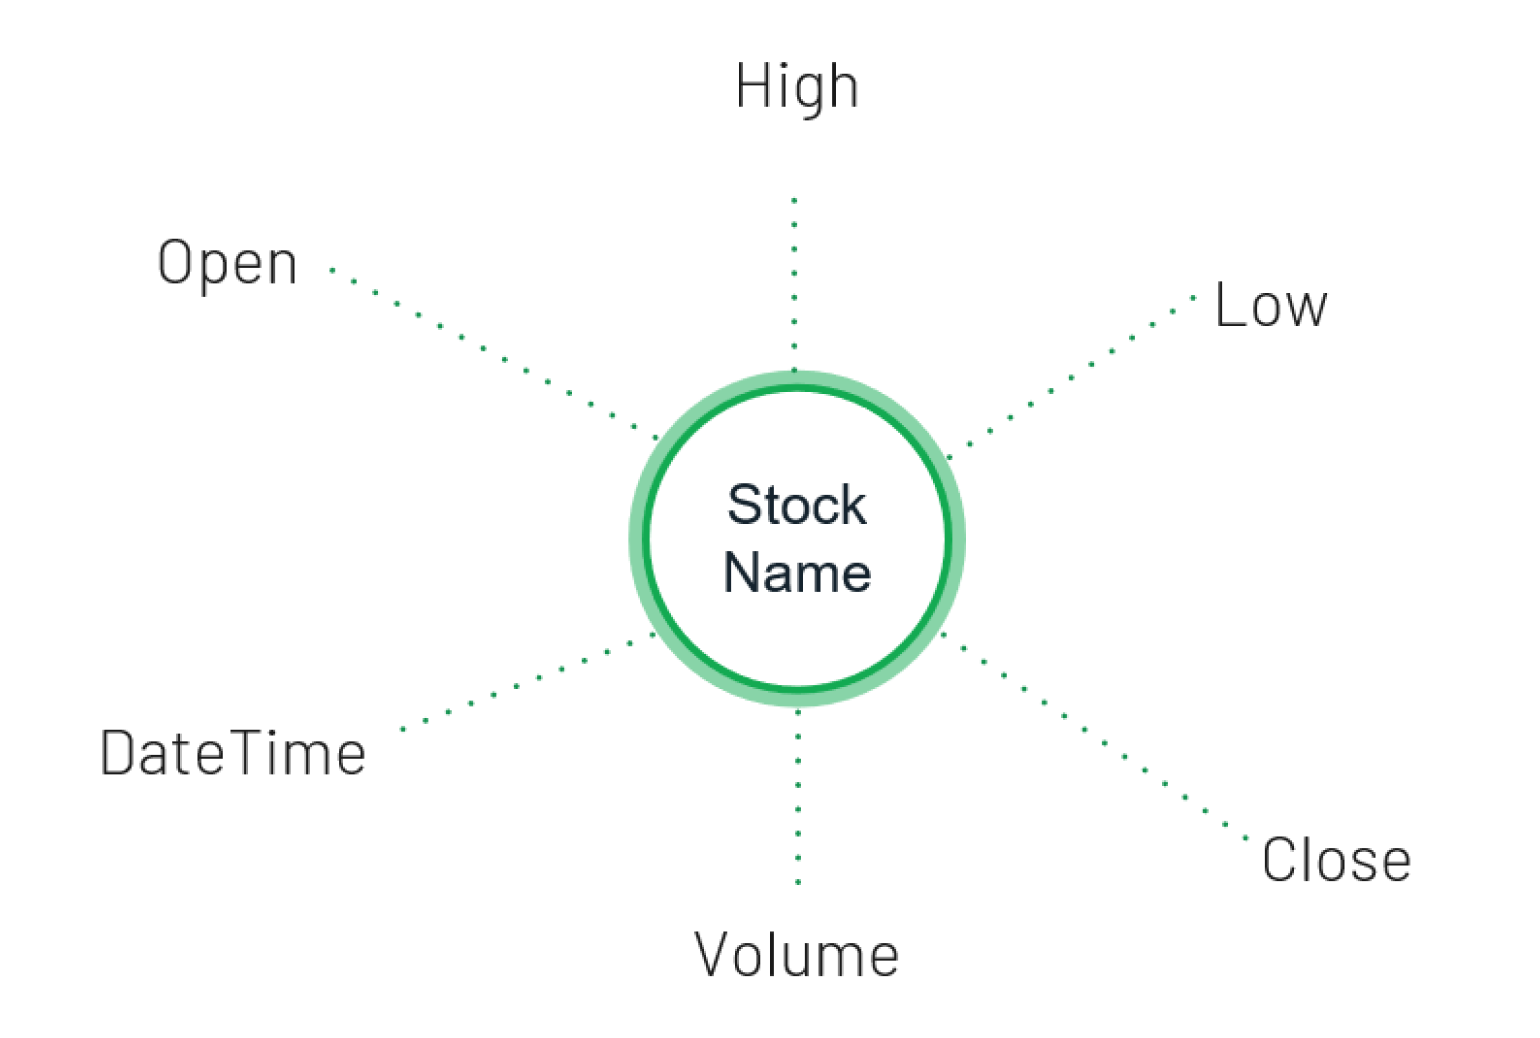 Figure 2: Daily stock data points